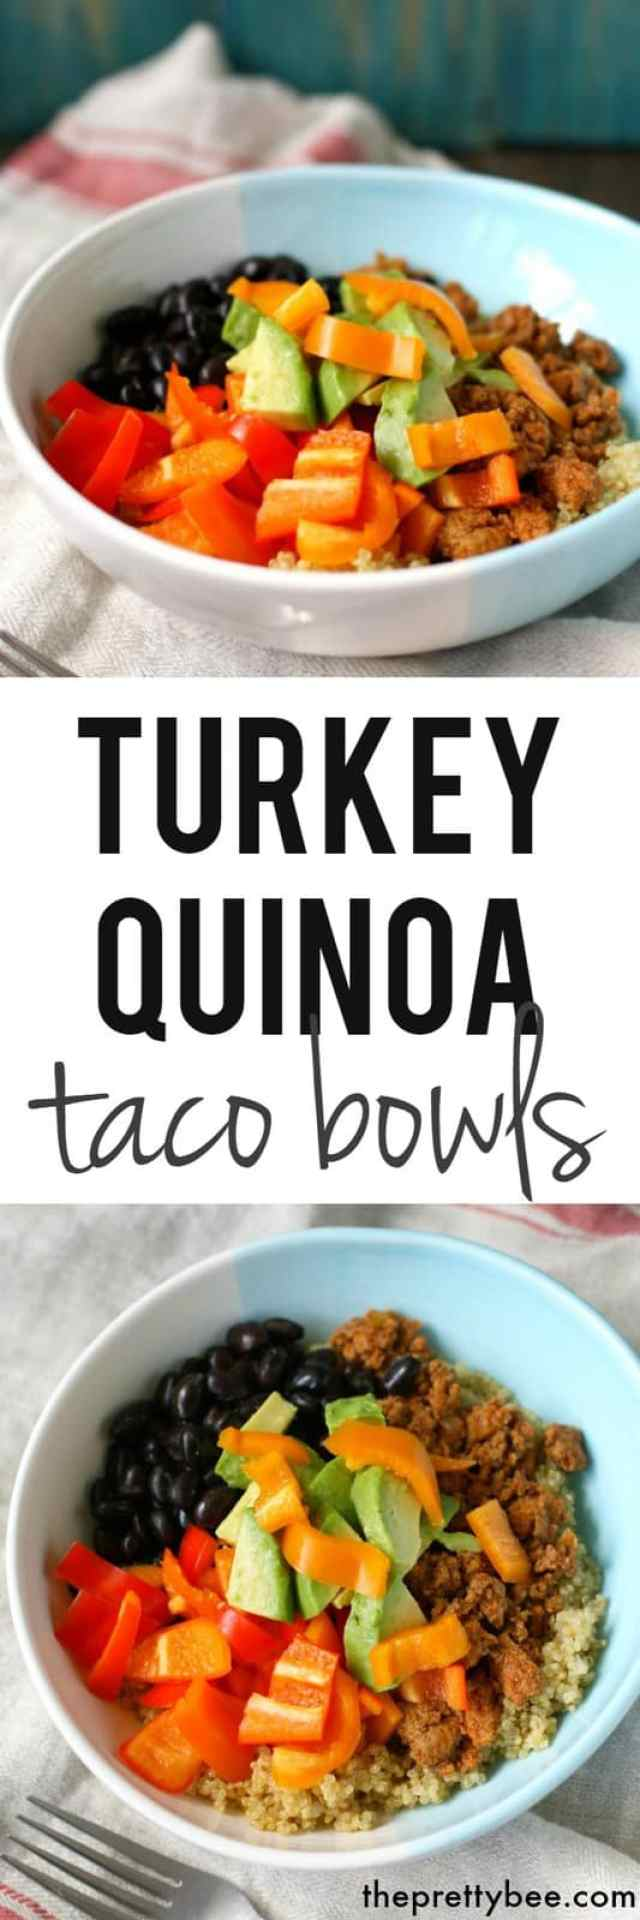 easy turkey taco bowls